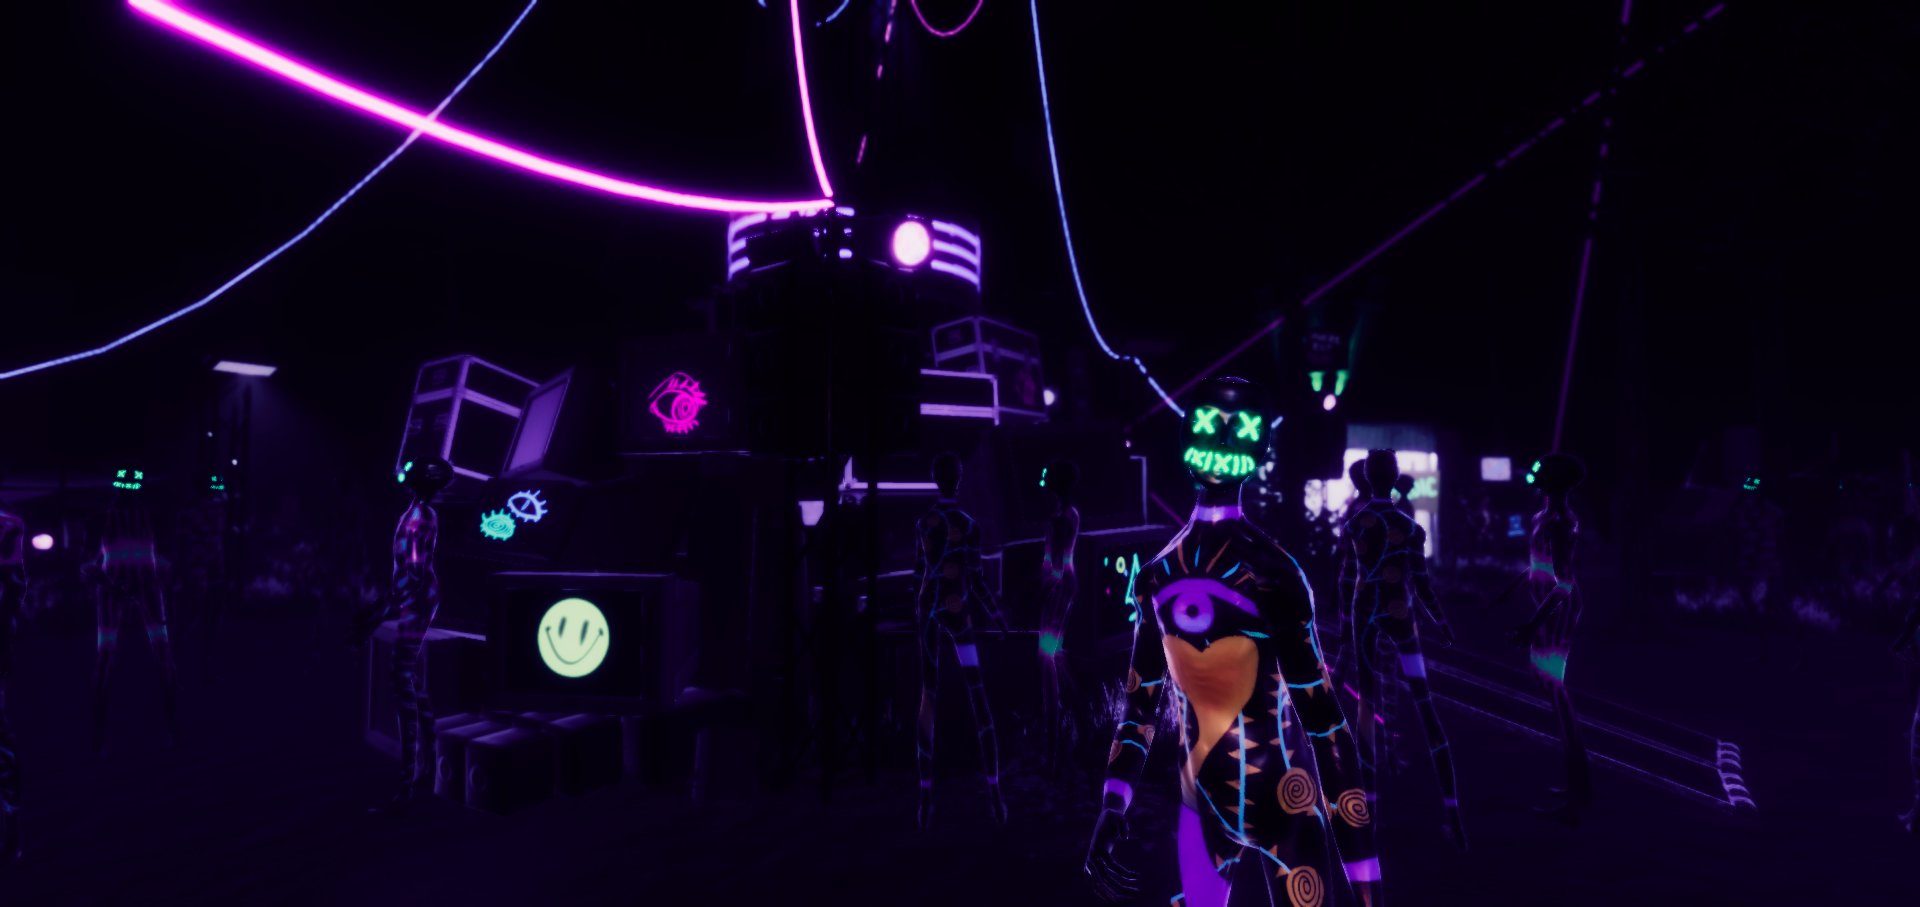 Halloween might be over, but we still wanna explore this creepy party 16 Sugar Gamers